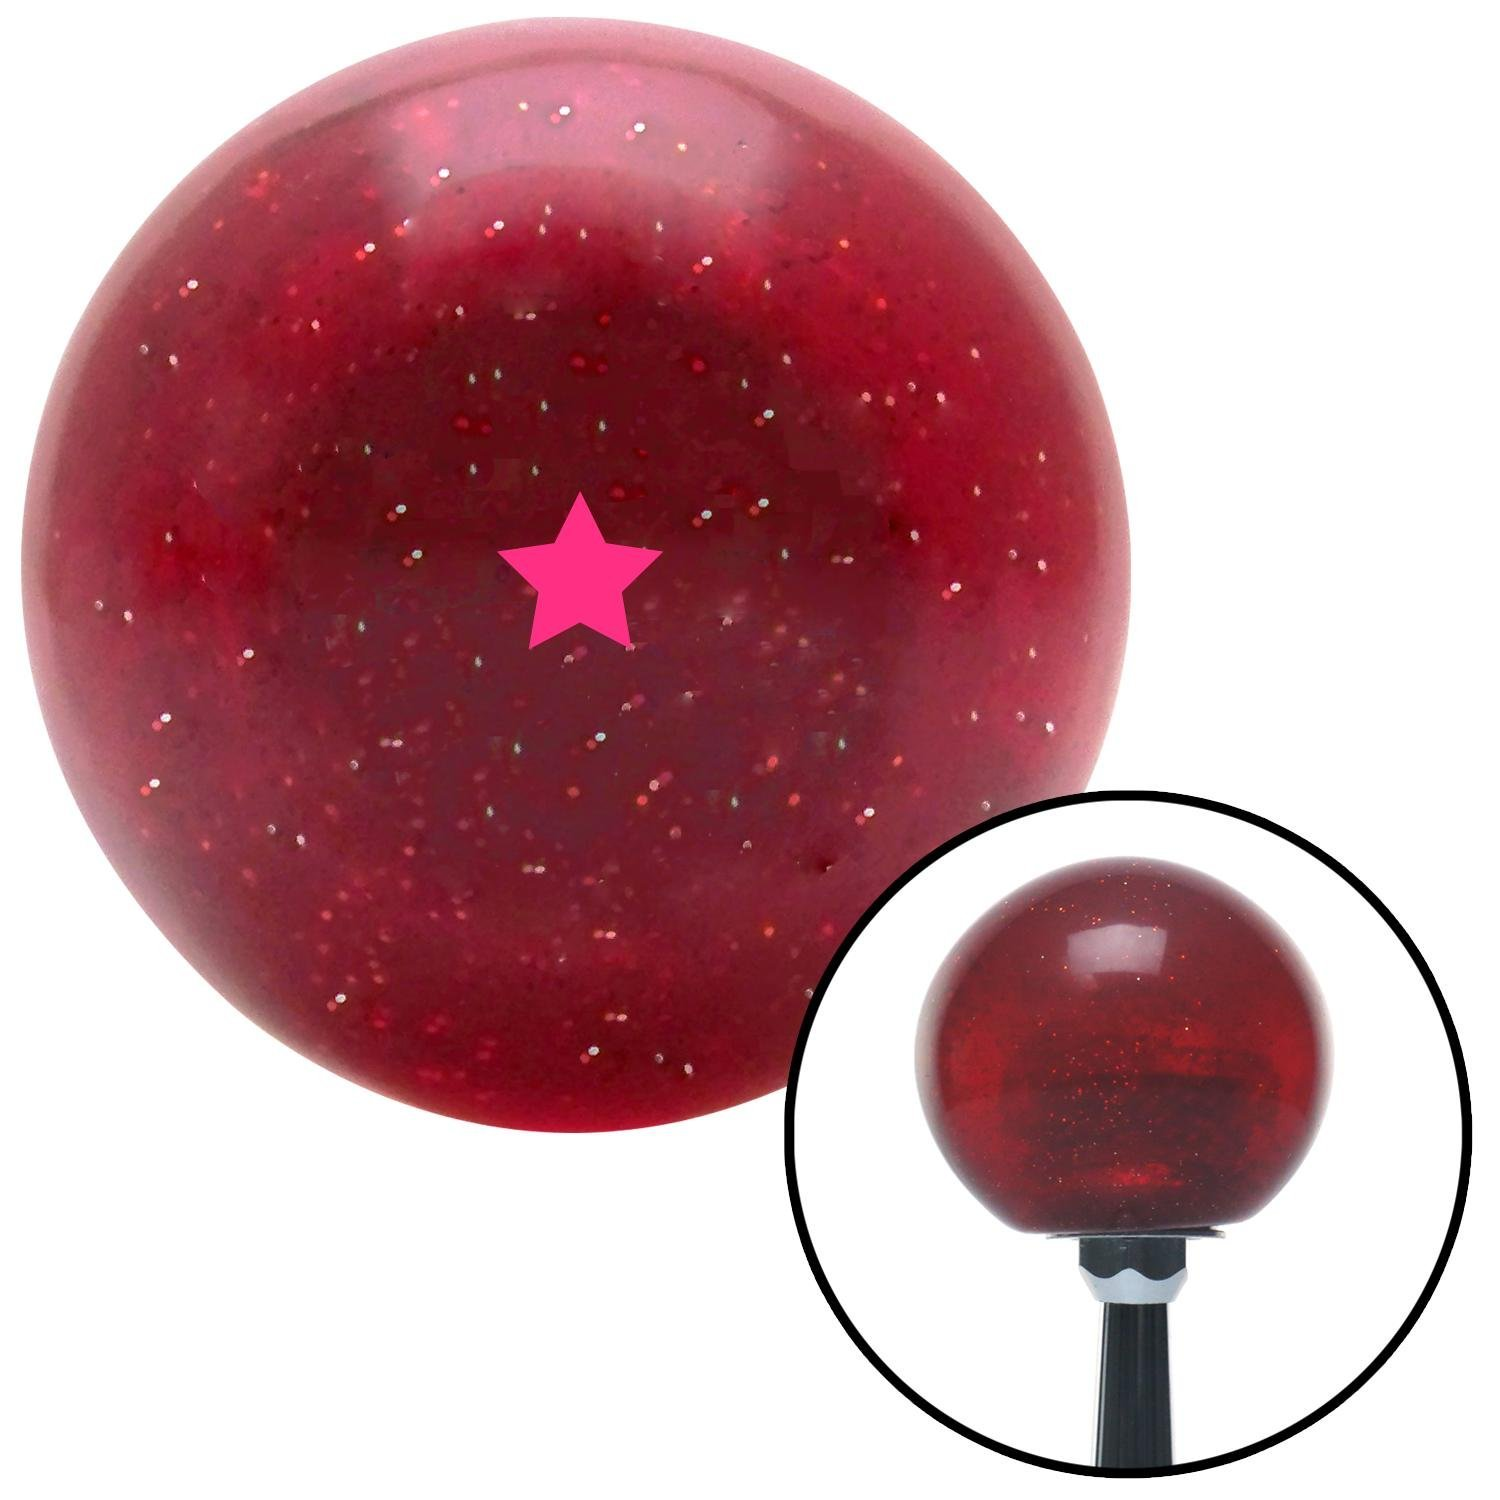 American Shifter 141650 Red Metal Flake Shift Knob with M16 x 1.5 Insert Pink Dragon Ball Z - 1 Star